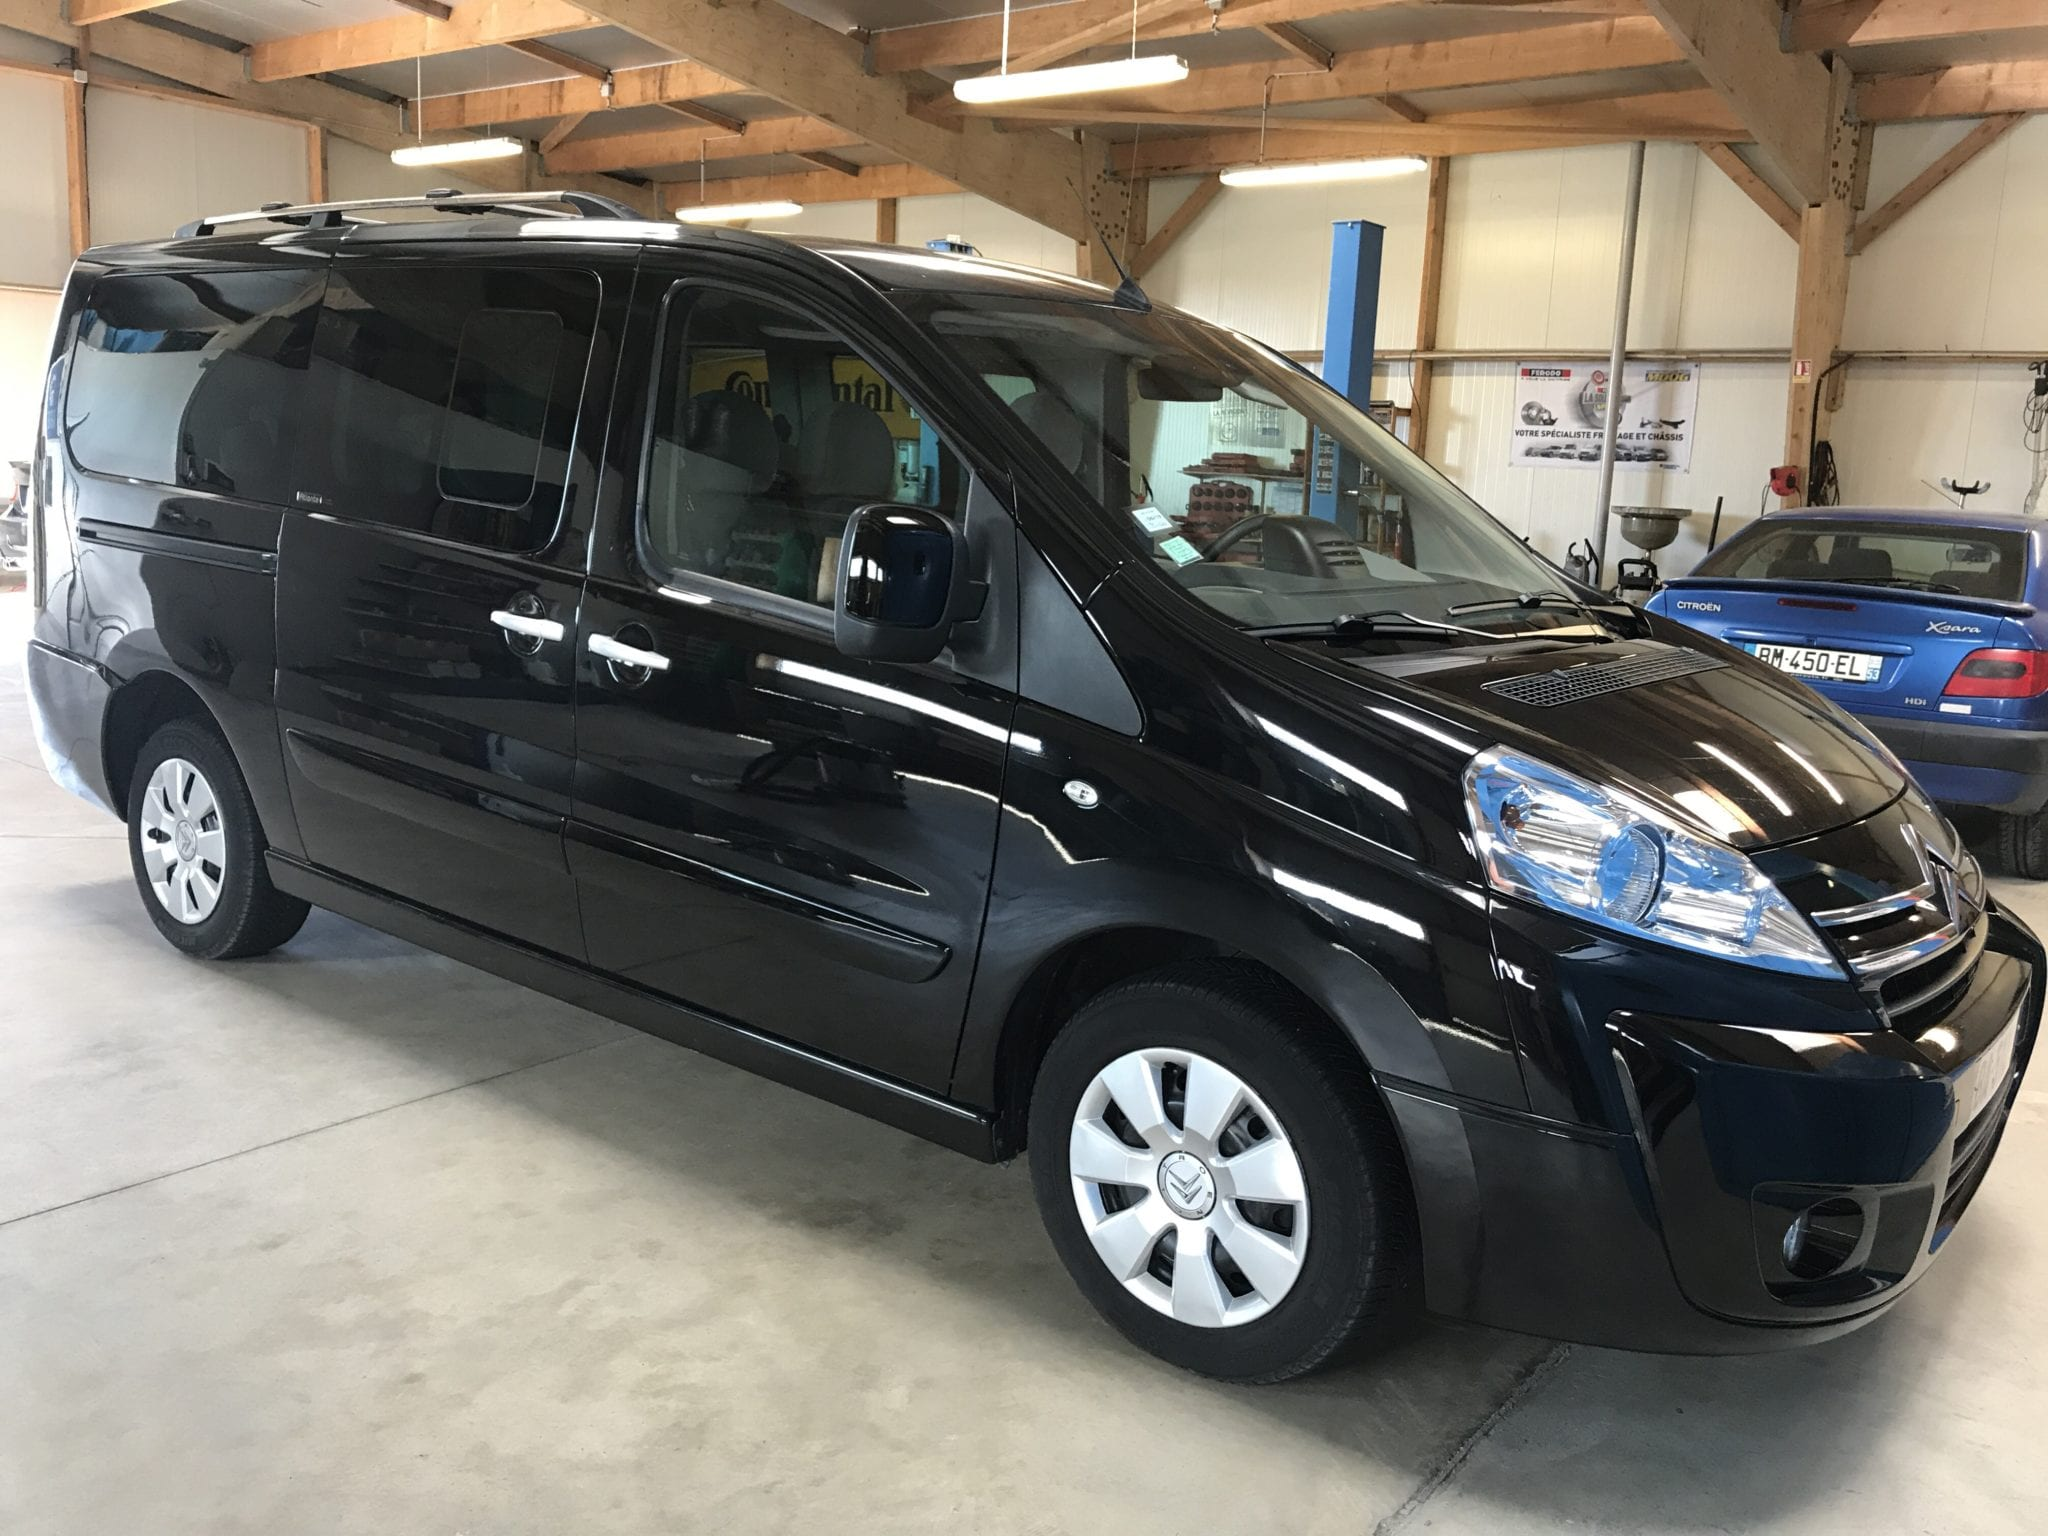 CITROEN JUMPY - Image 1